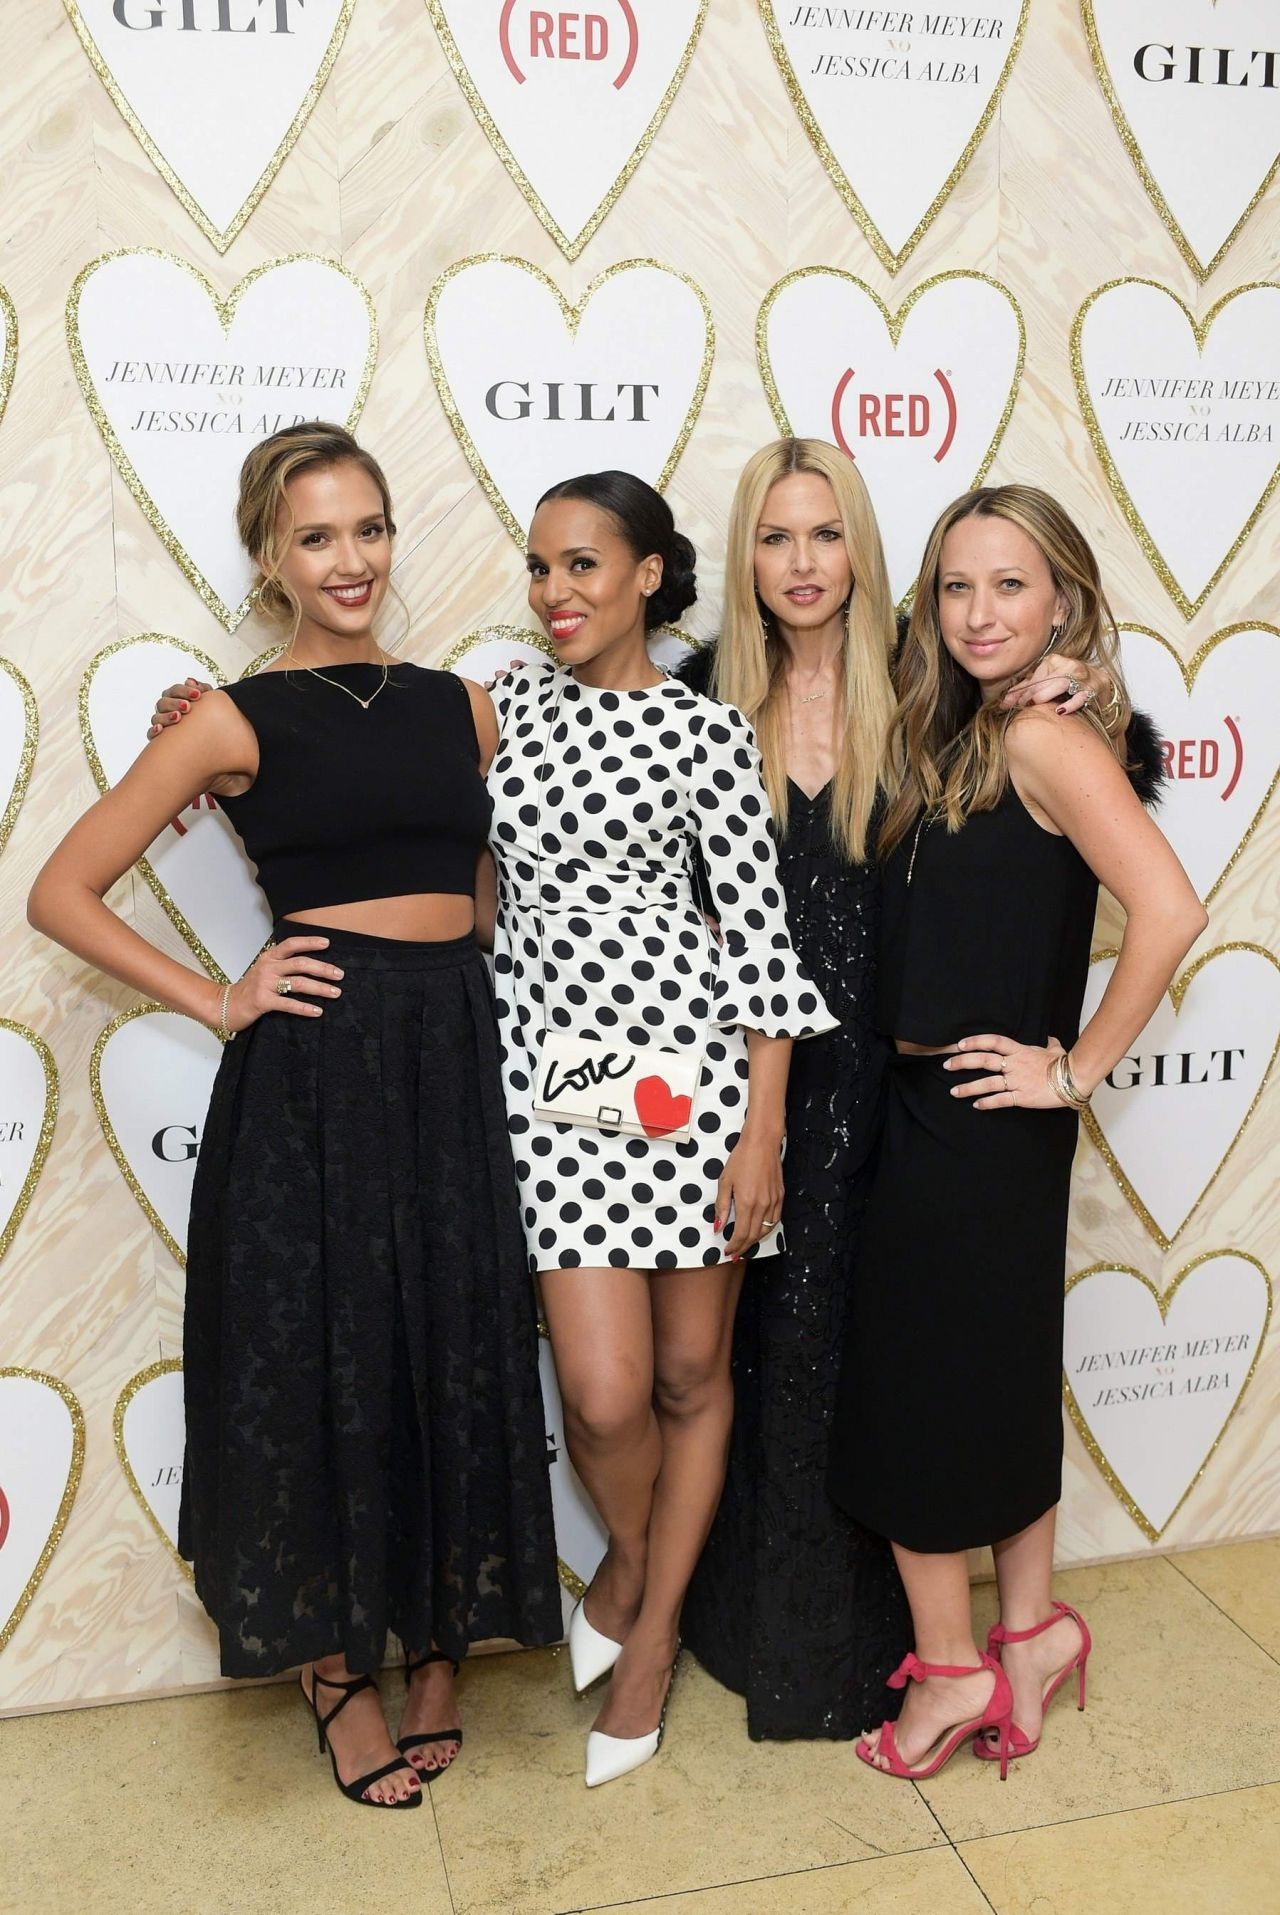 Jessica Alba Celebrate The Launch Of Jennifer Meyer xo Jessica Alba, February 2015